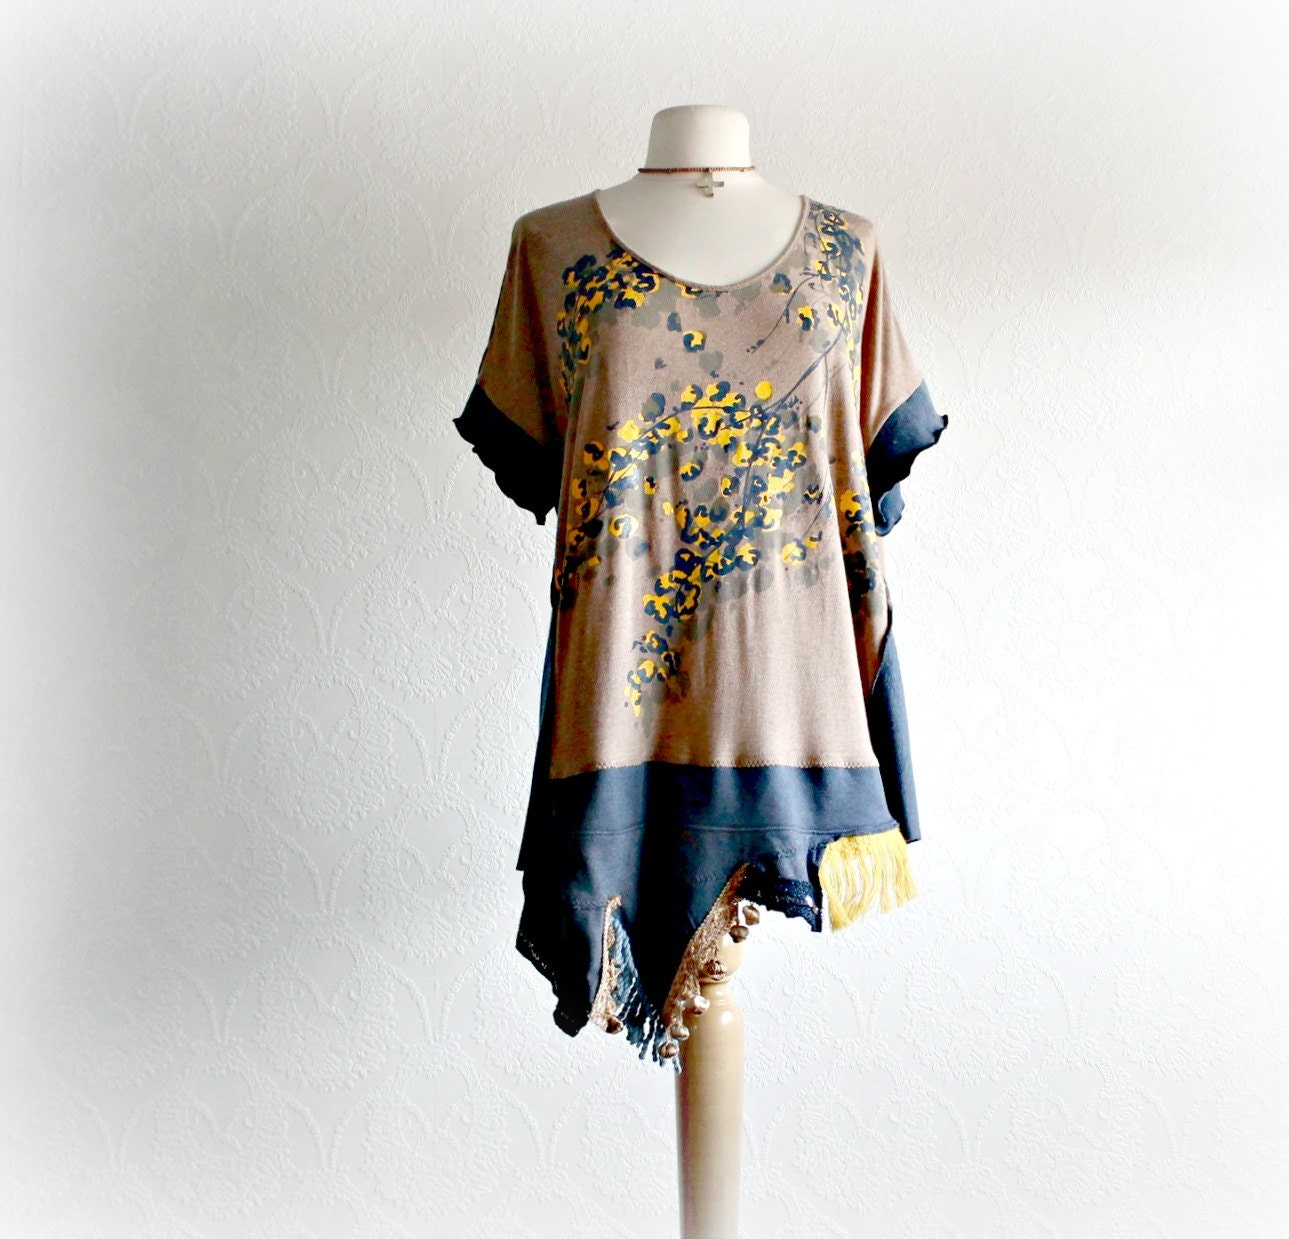 Brown Women's Top 2X Plus Size Clothing By BrokenGhostClothing